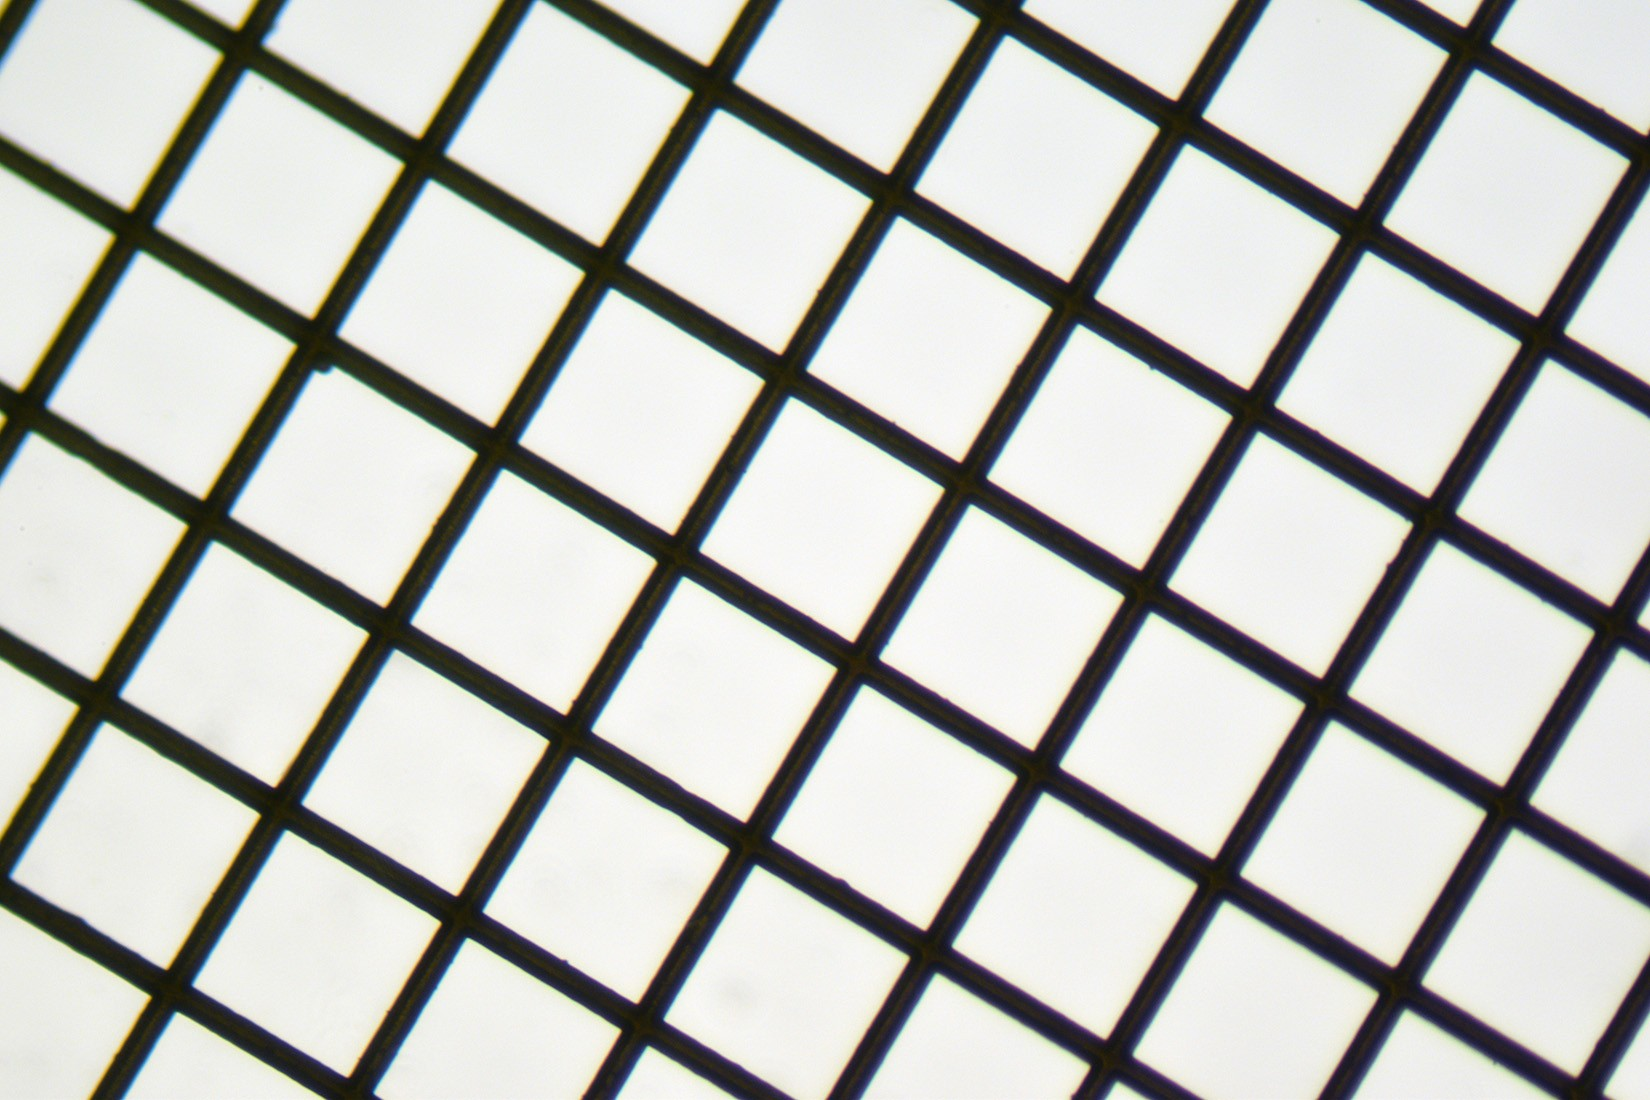 Copper 200 mesh Grids Square